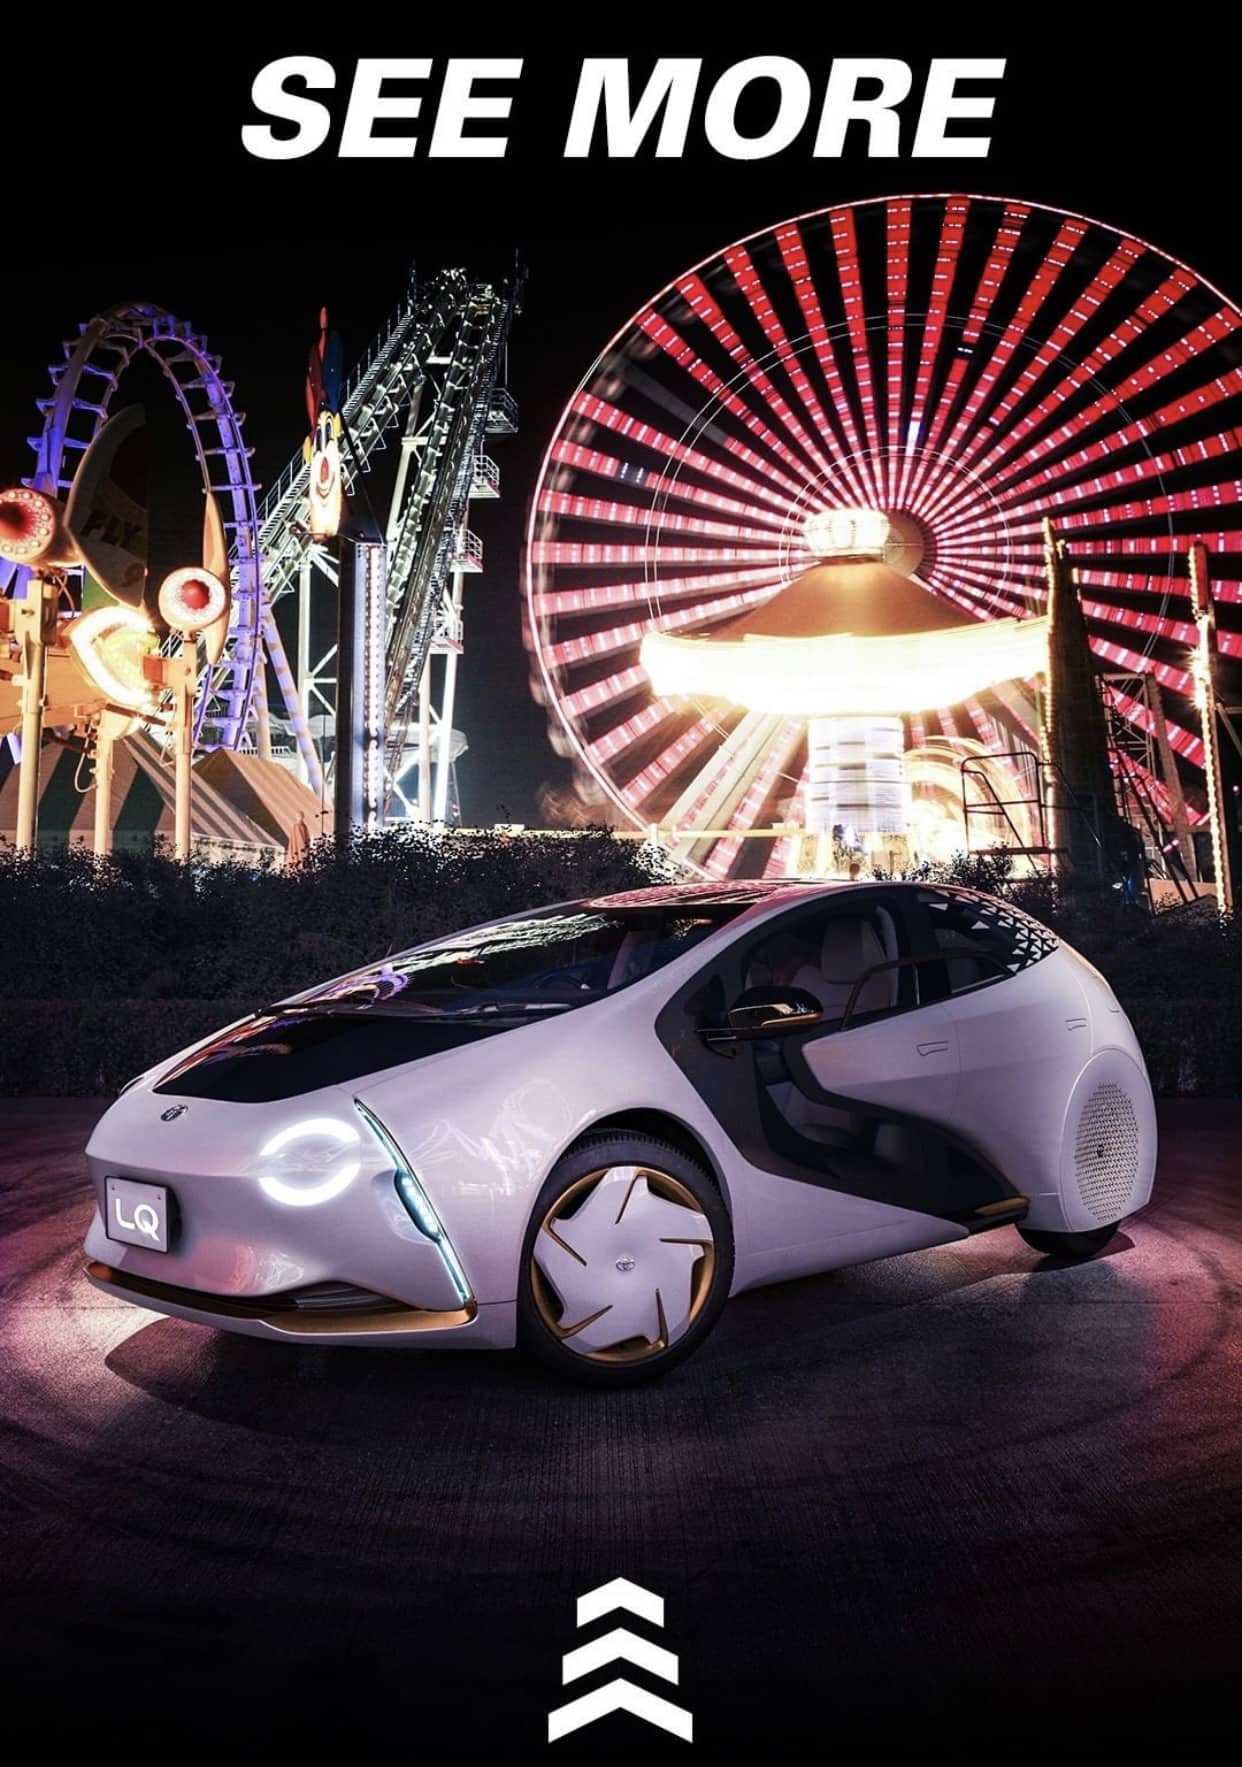 Toyota Features Morey's Piers in Ad for New Car